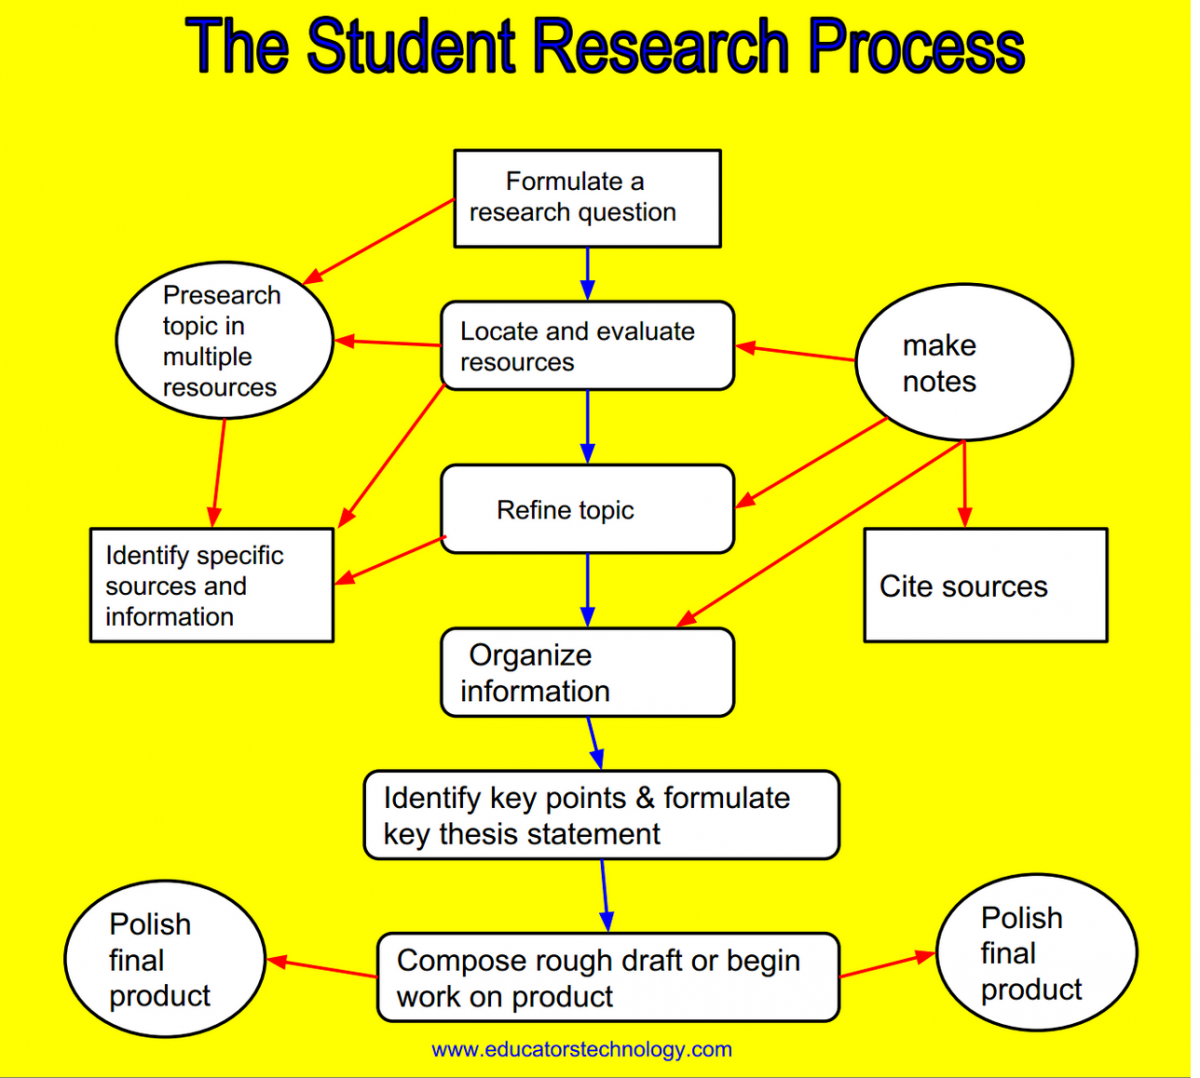 evaluating the research process essay Read this essay on evaluation of the nursing process evaluating the research process health care research utilization – hcs/465.